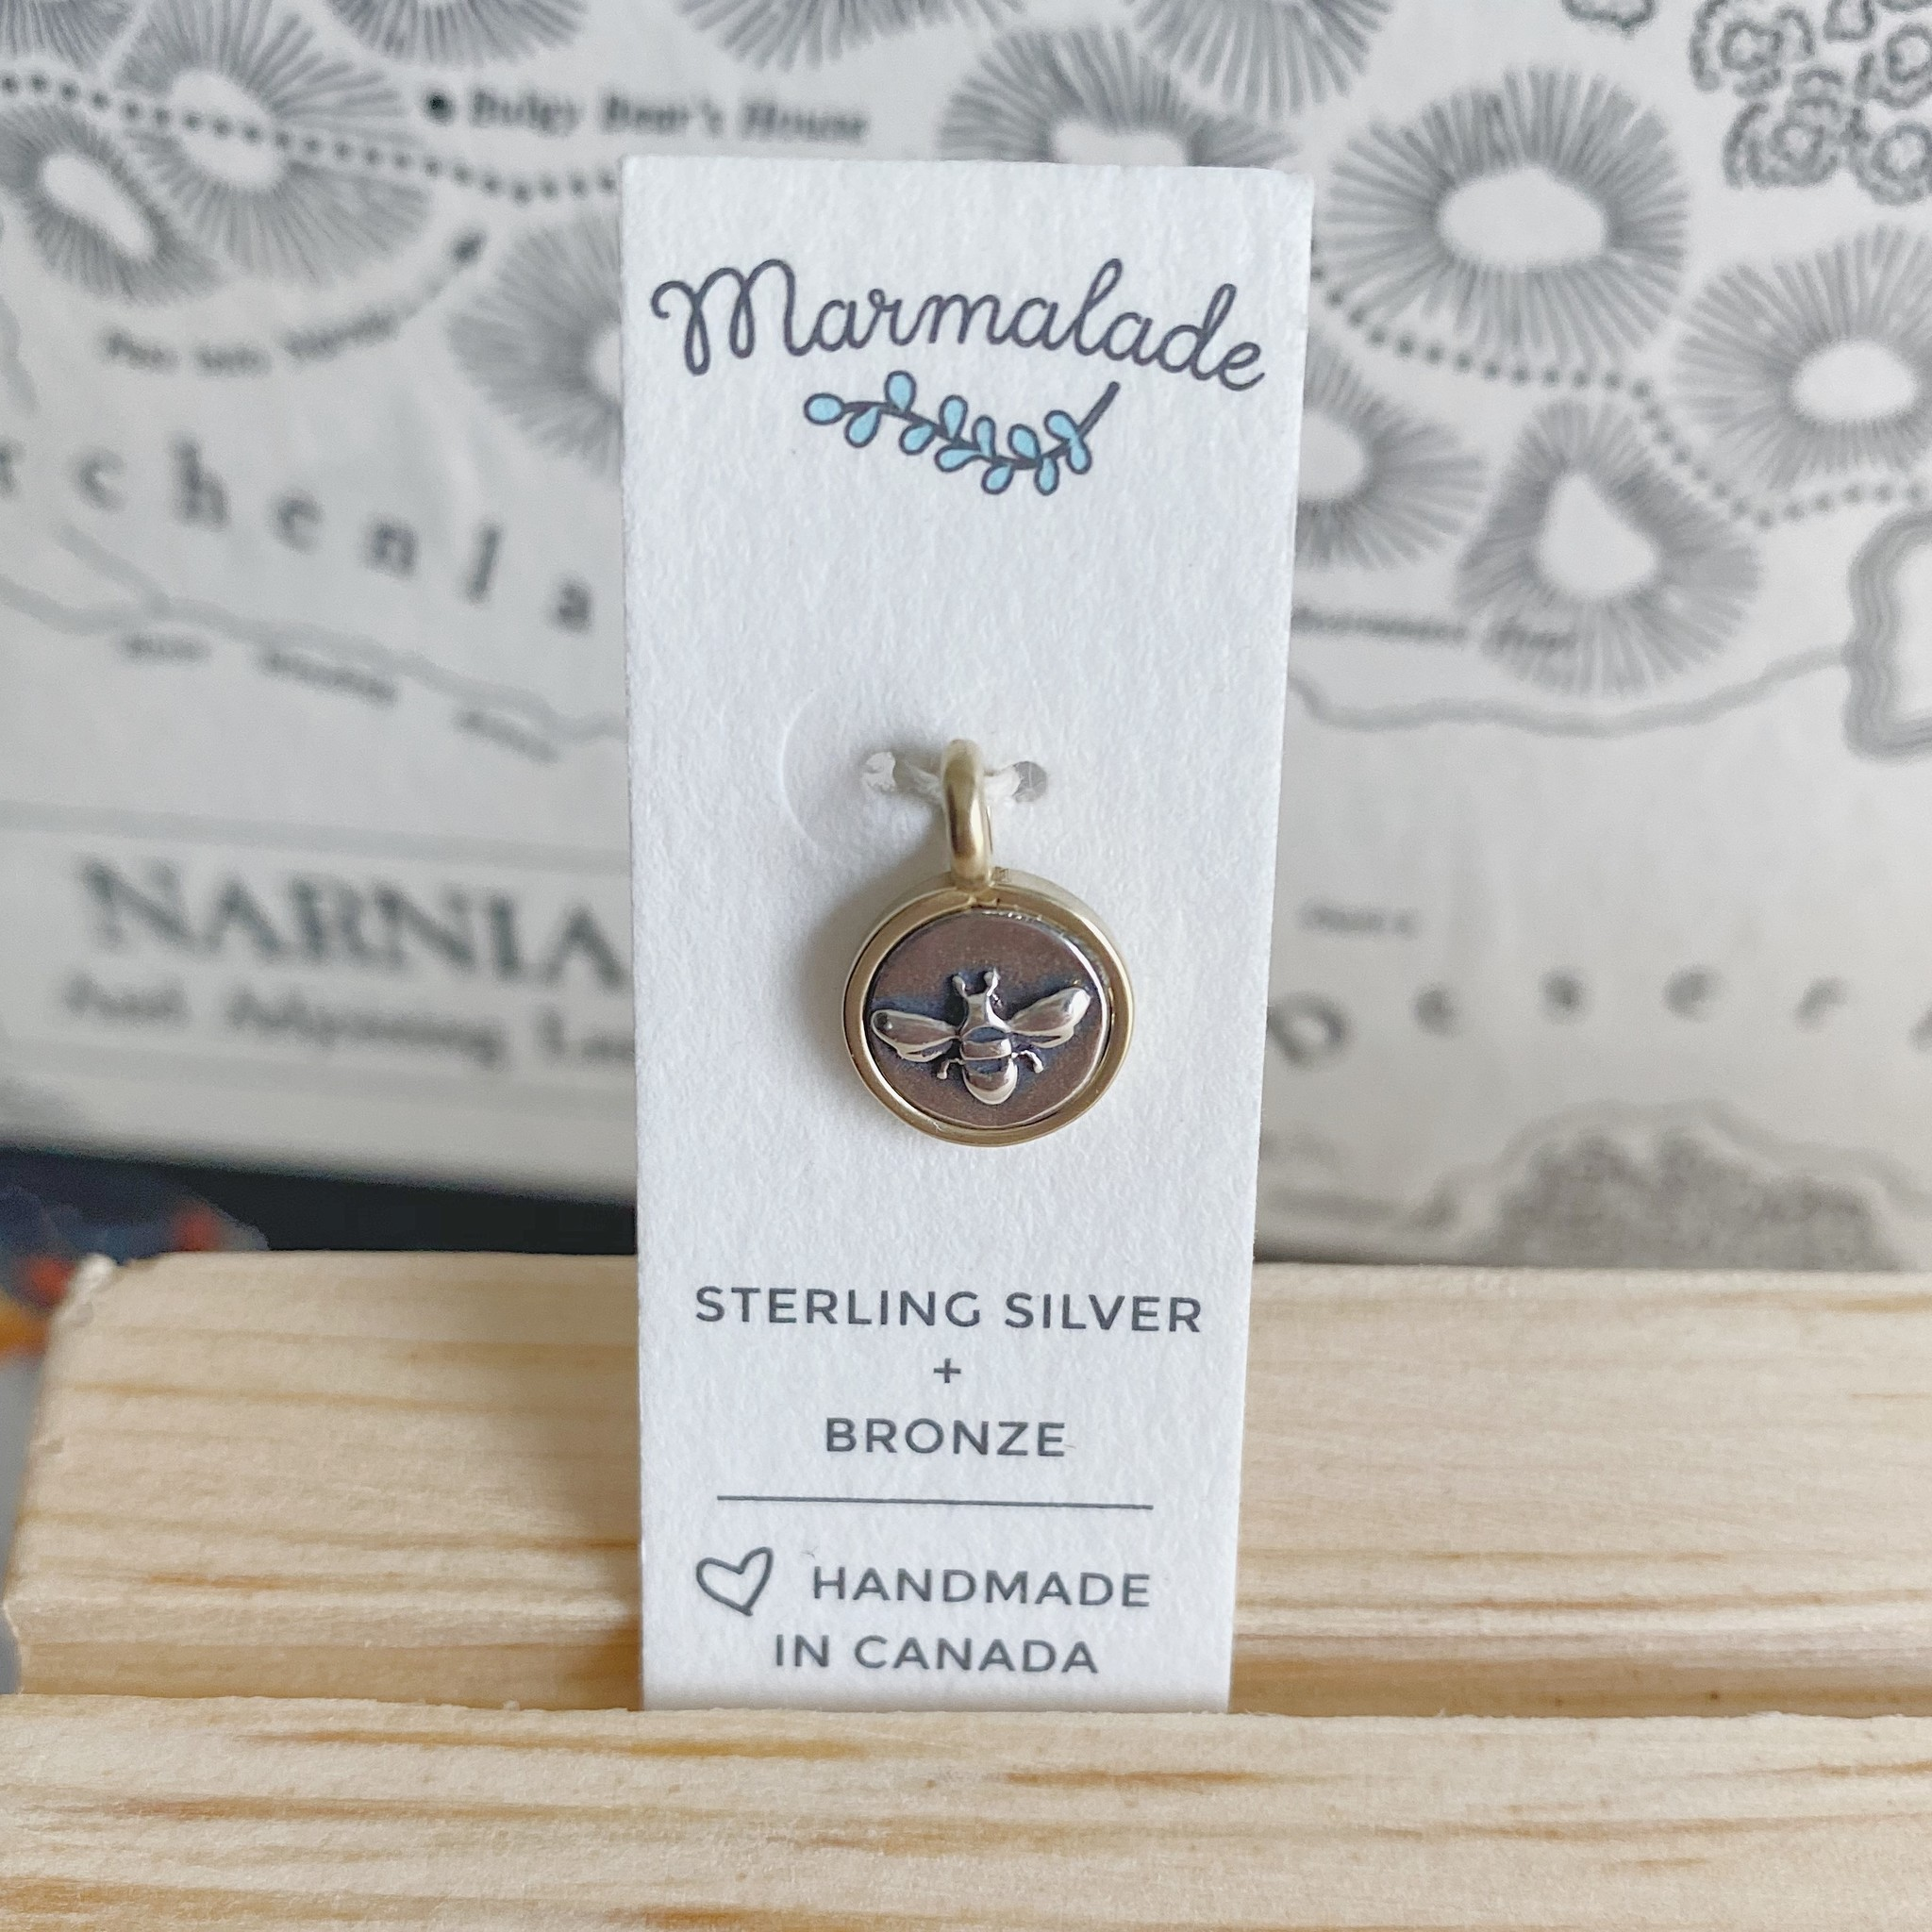 Marmalade Tiny Bee Charm